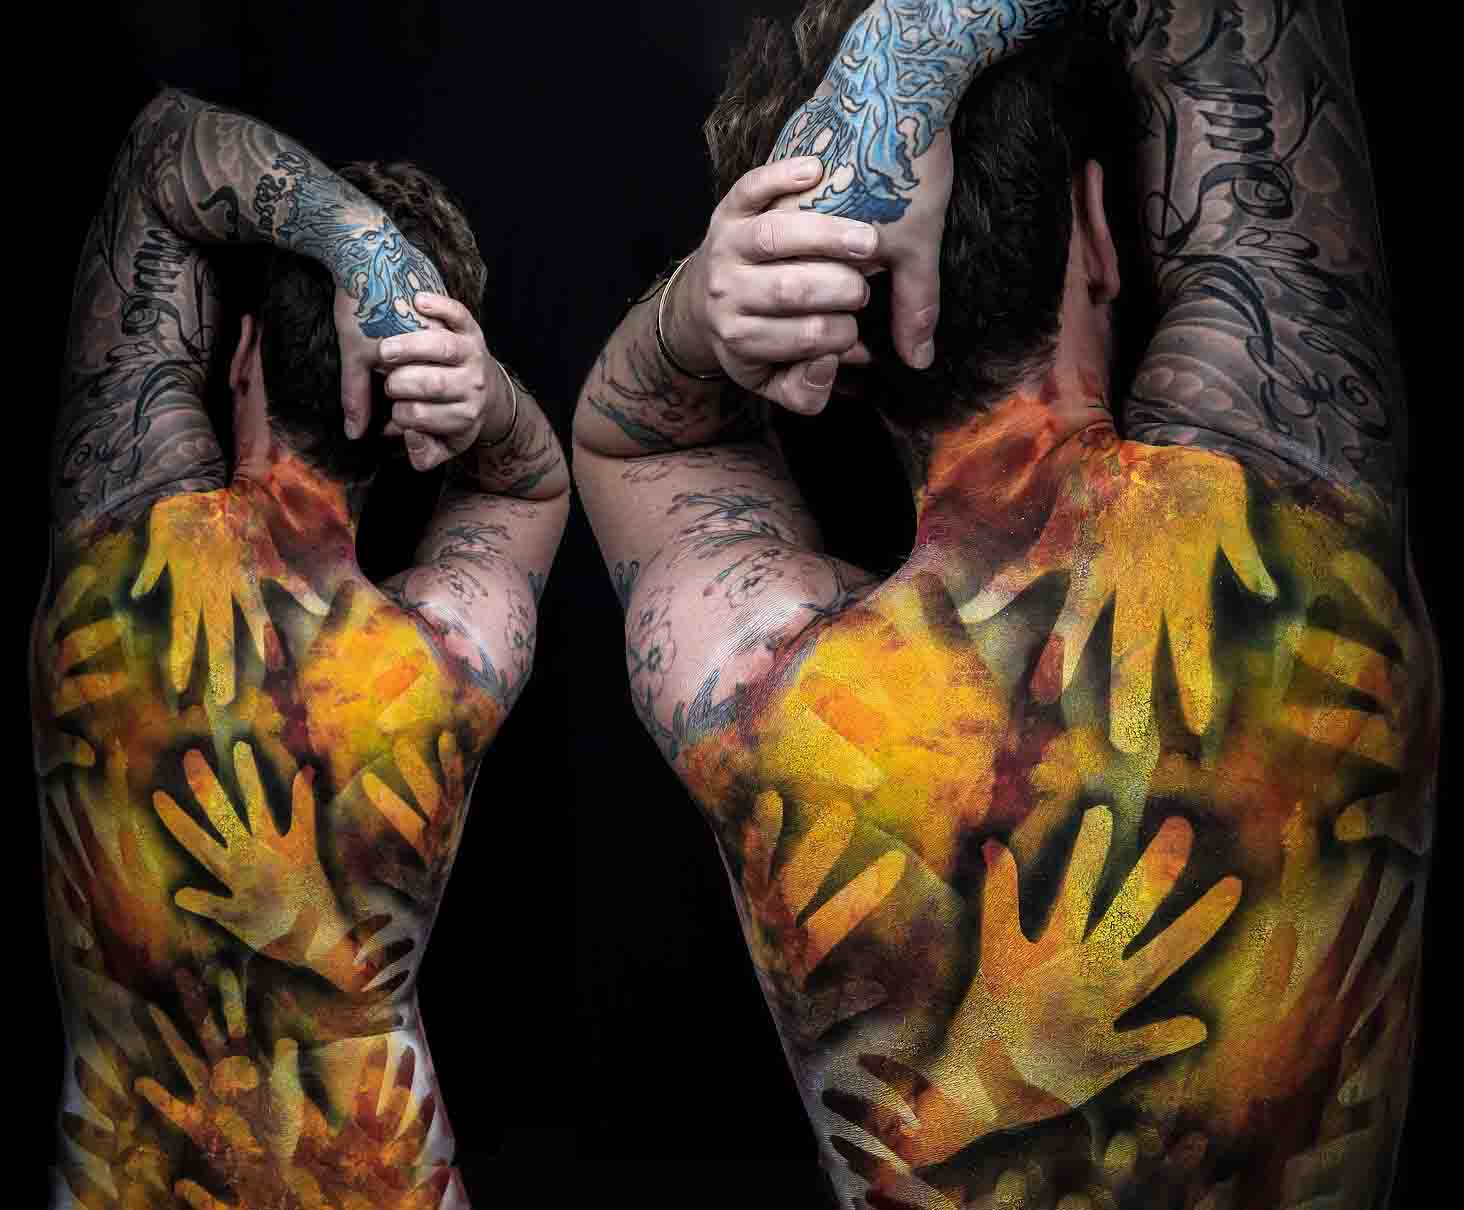 Hand art body painting by FTMakeup London 2